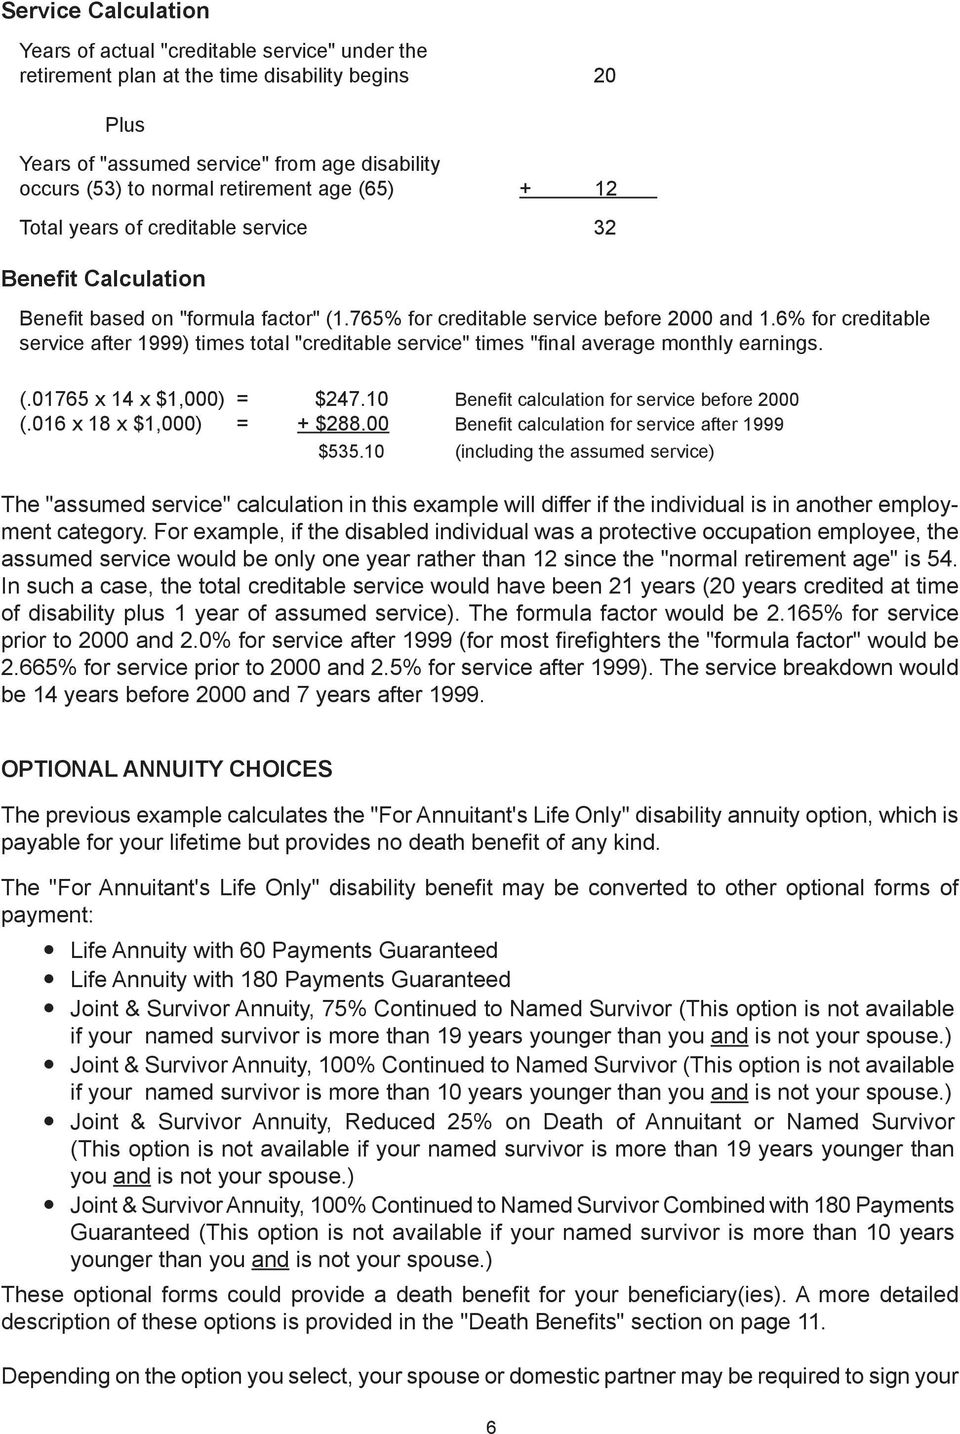 "6% for creditable service after 1999) times total ""creditable service"" times ""final average monthly earnings. (.01765 x 14 x $1,000) = $247.10 Benefit calculation for service before 2000 (."